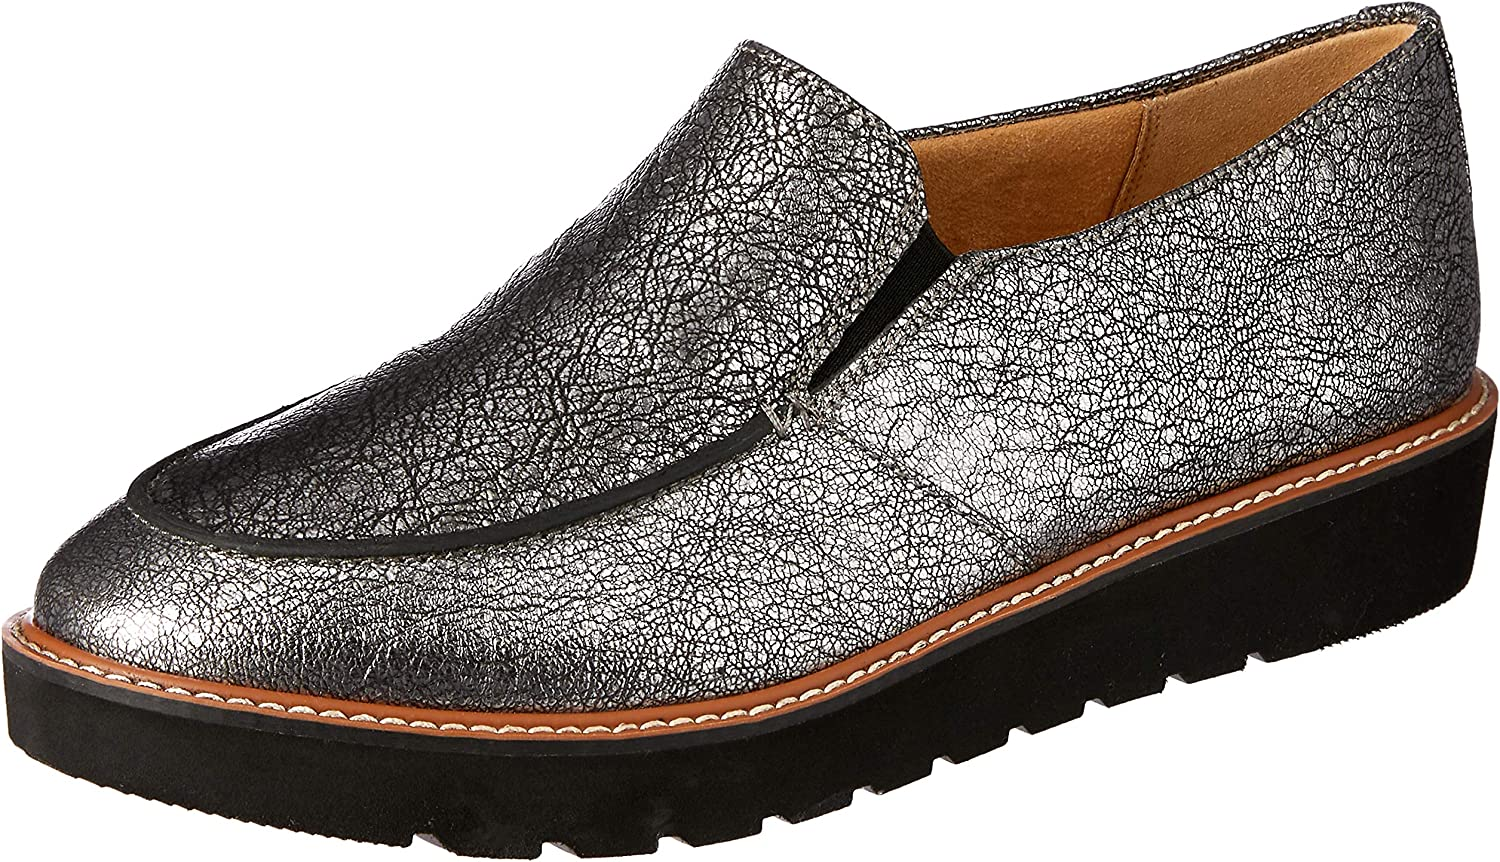 Naturalizer Aibileen Slip-On Loafers, Silver Crackle